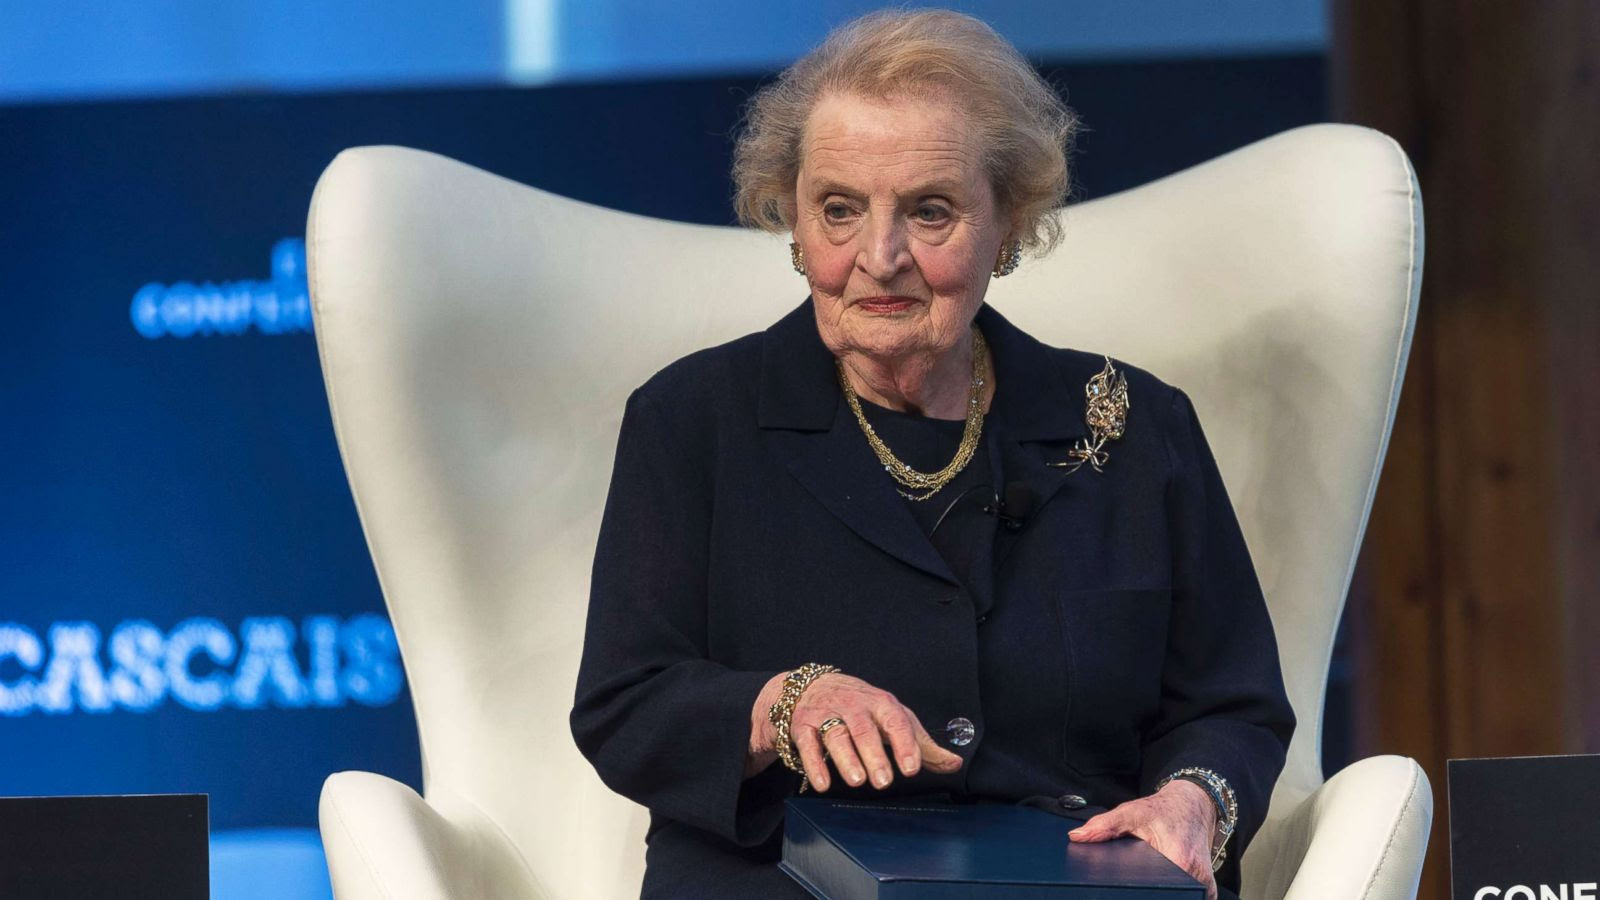 Madeleine Albright sitting in a chair on stage